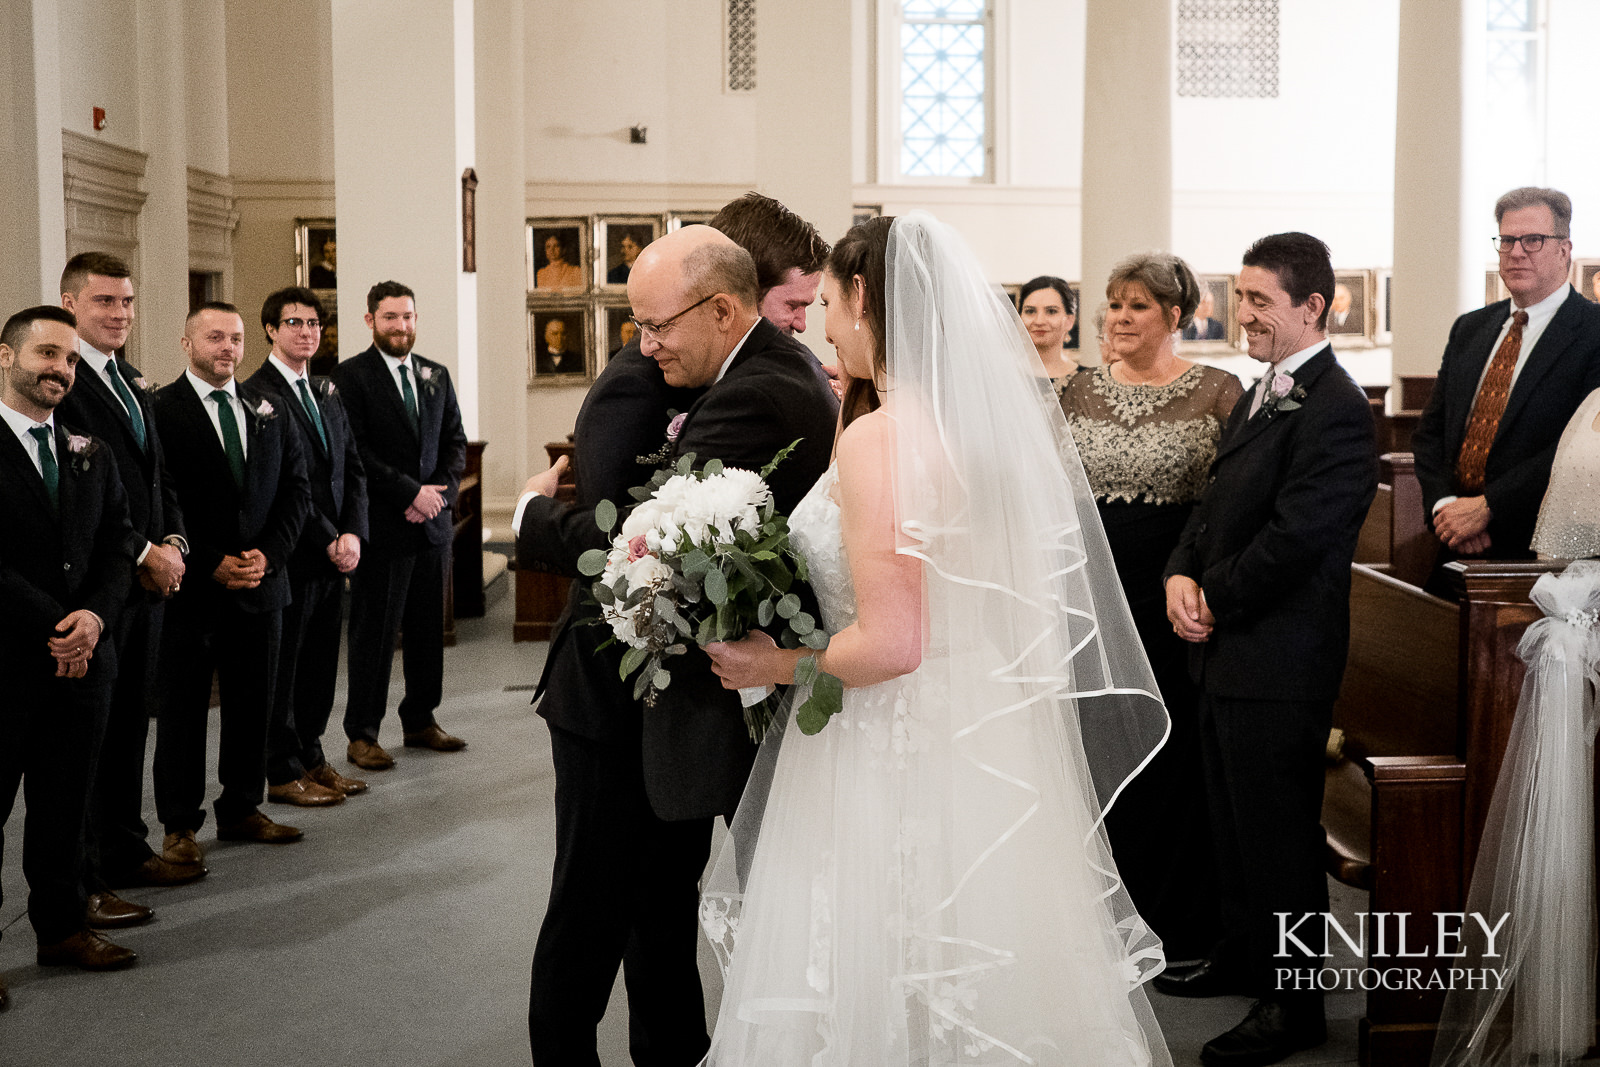 18-Karpeles-Manuscript-Library-Museum-Wedding-Buffalo-NY-Kniley-Photography.jpg